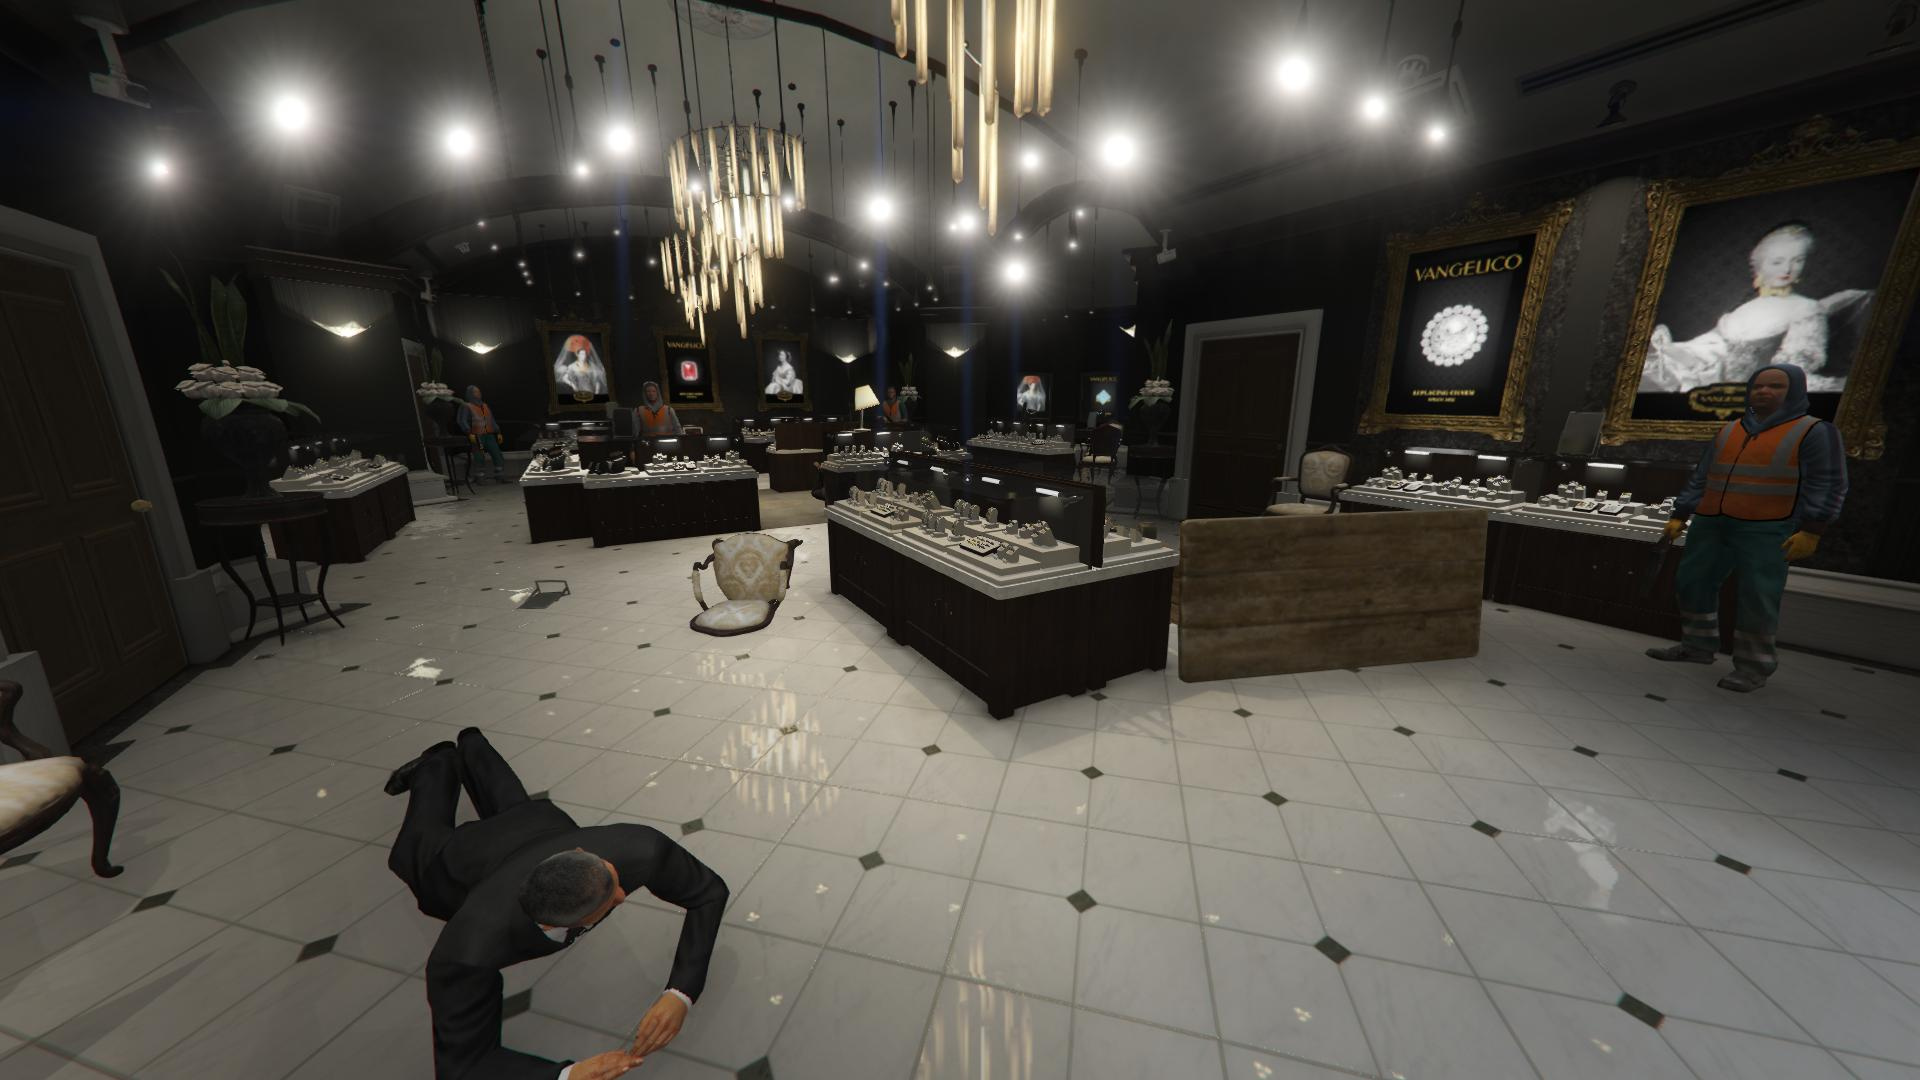 jewelry store robbery playable gta5